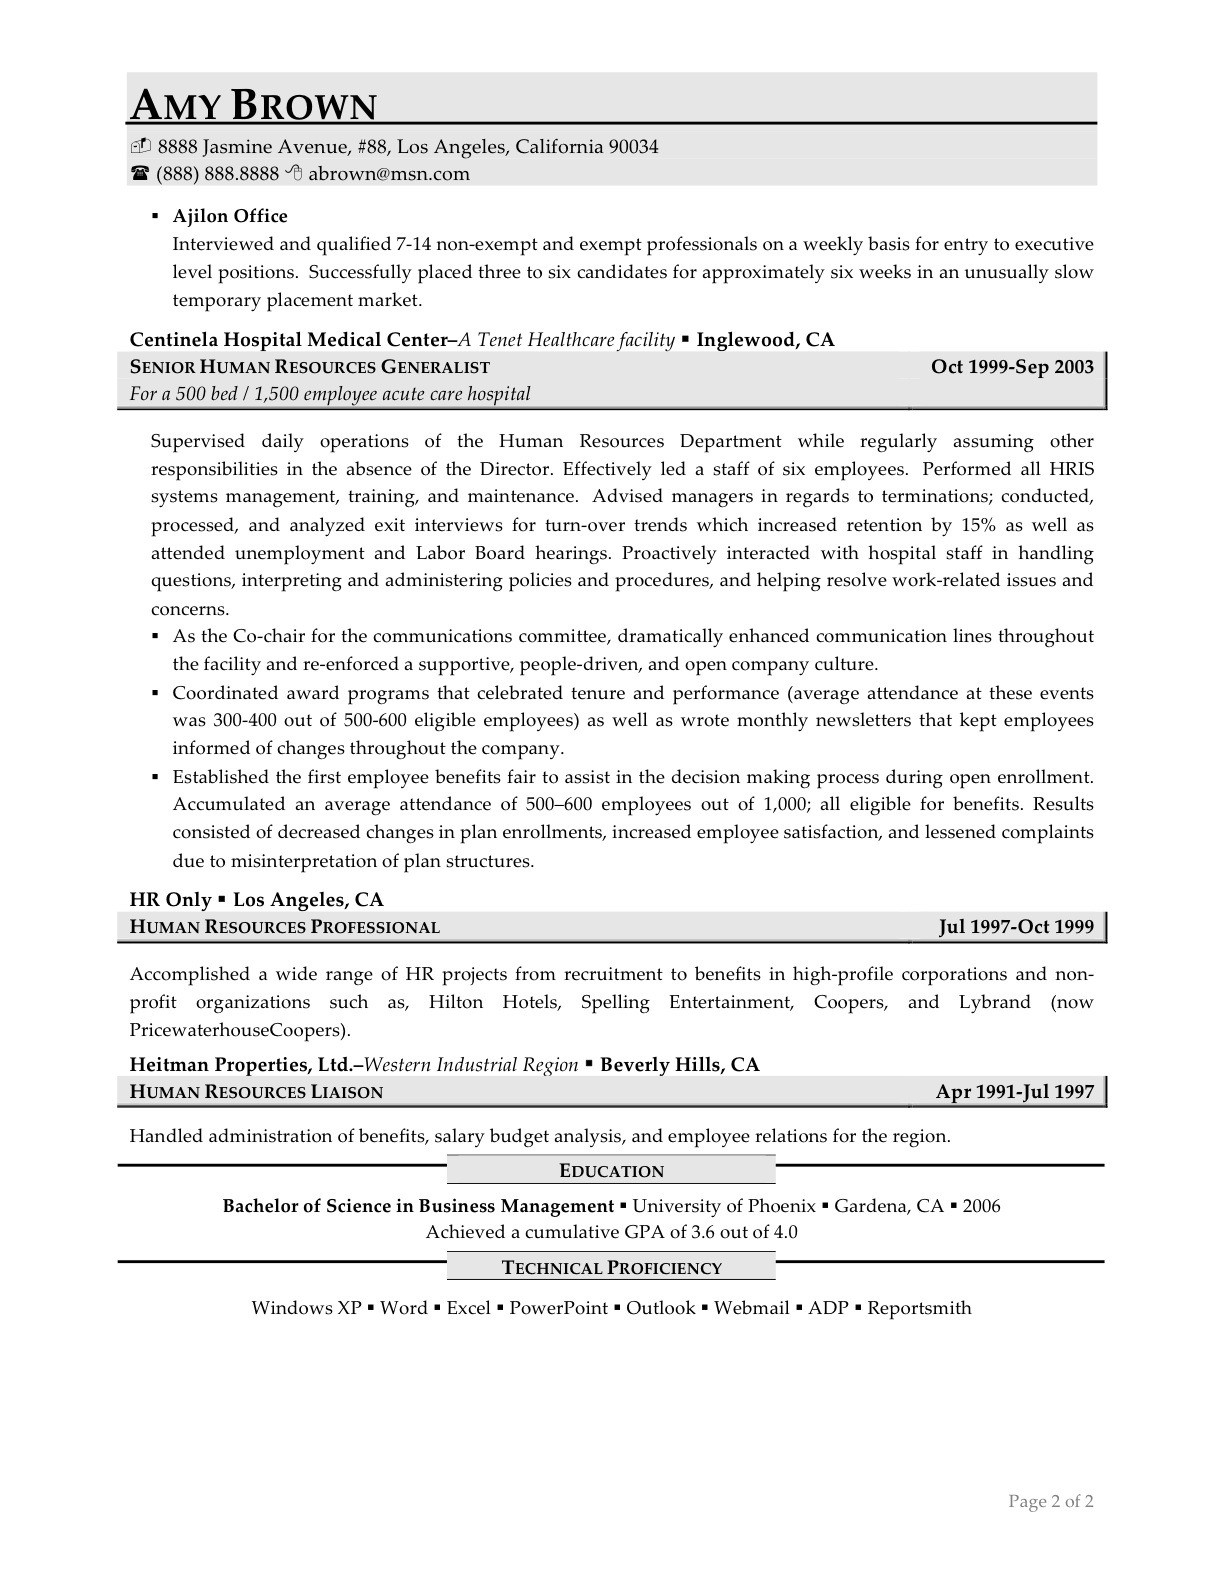 Hr Generalist Resume - Hr Generalist Resume Fresh Best Examples Resumes Ecologist Resume 0d